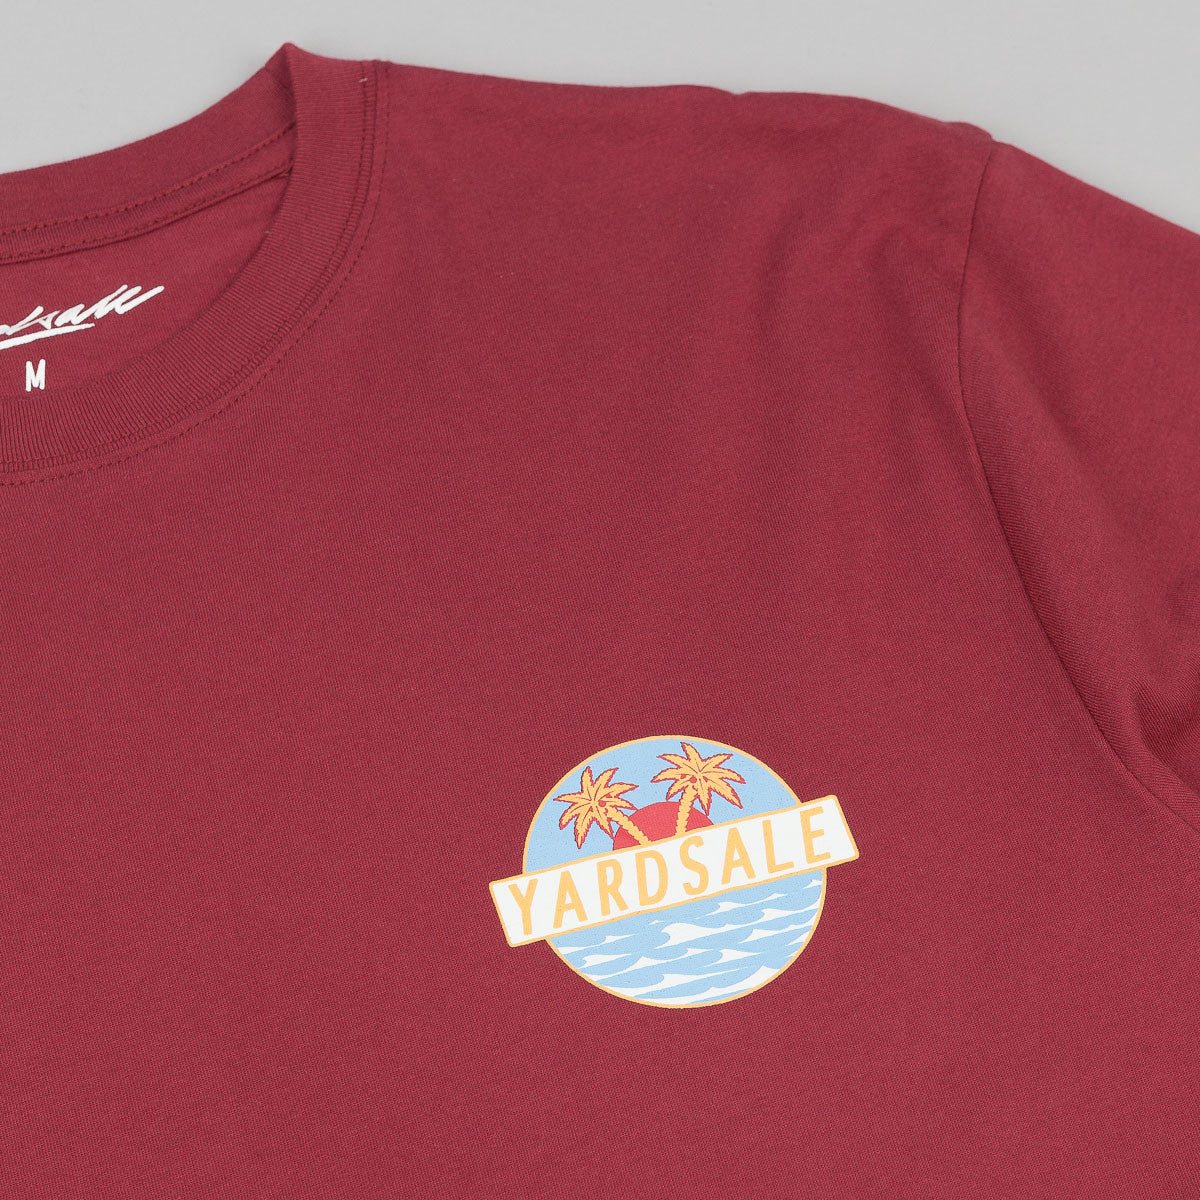 Yardsale T-Shirt - Burgundy